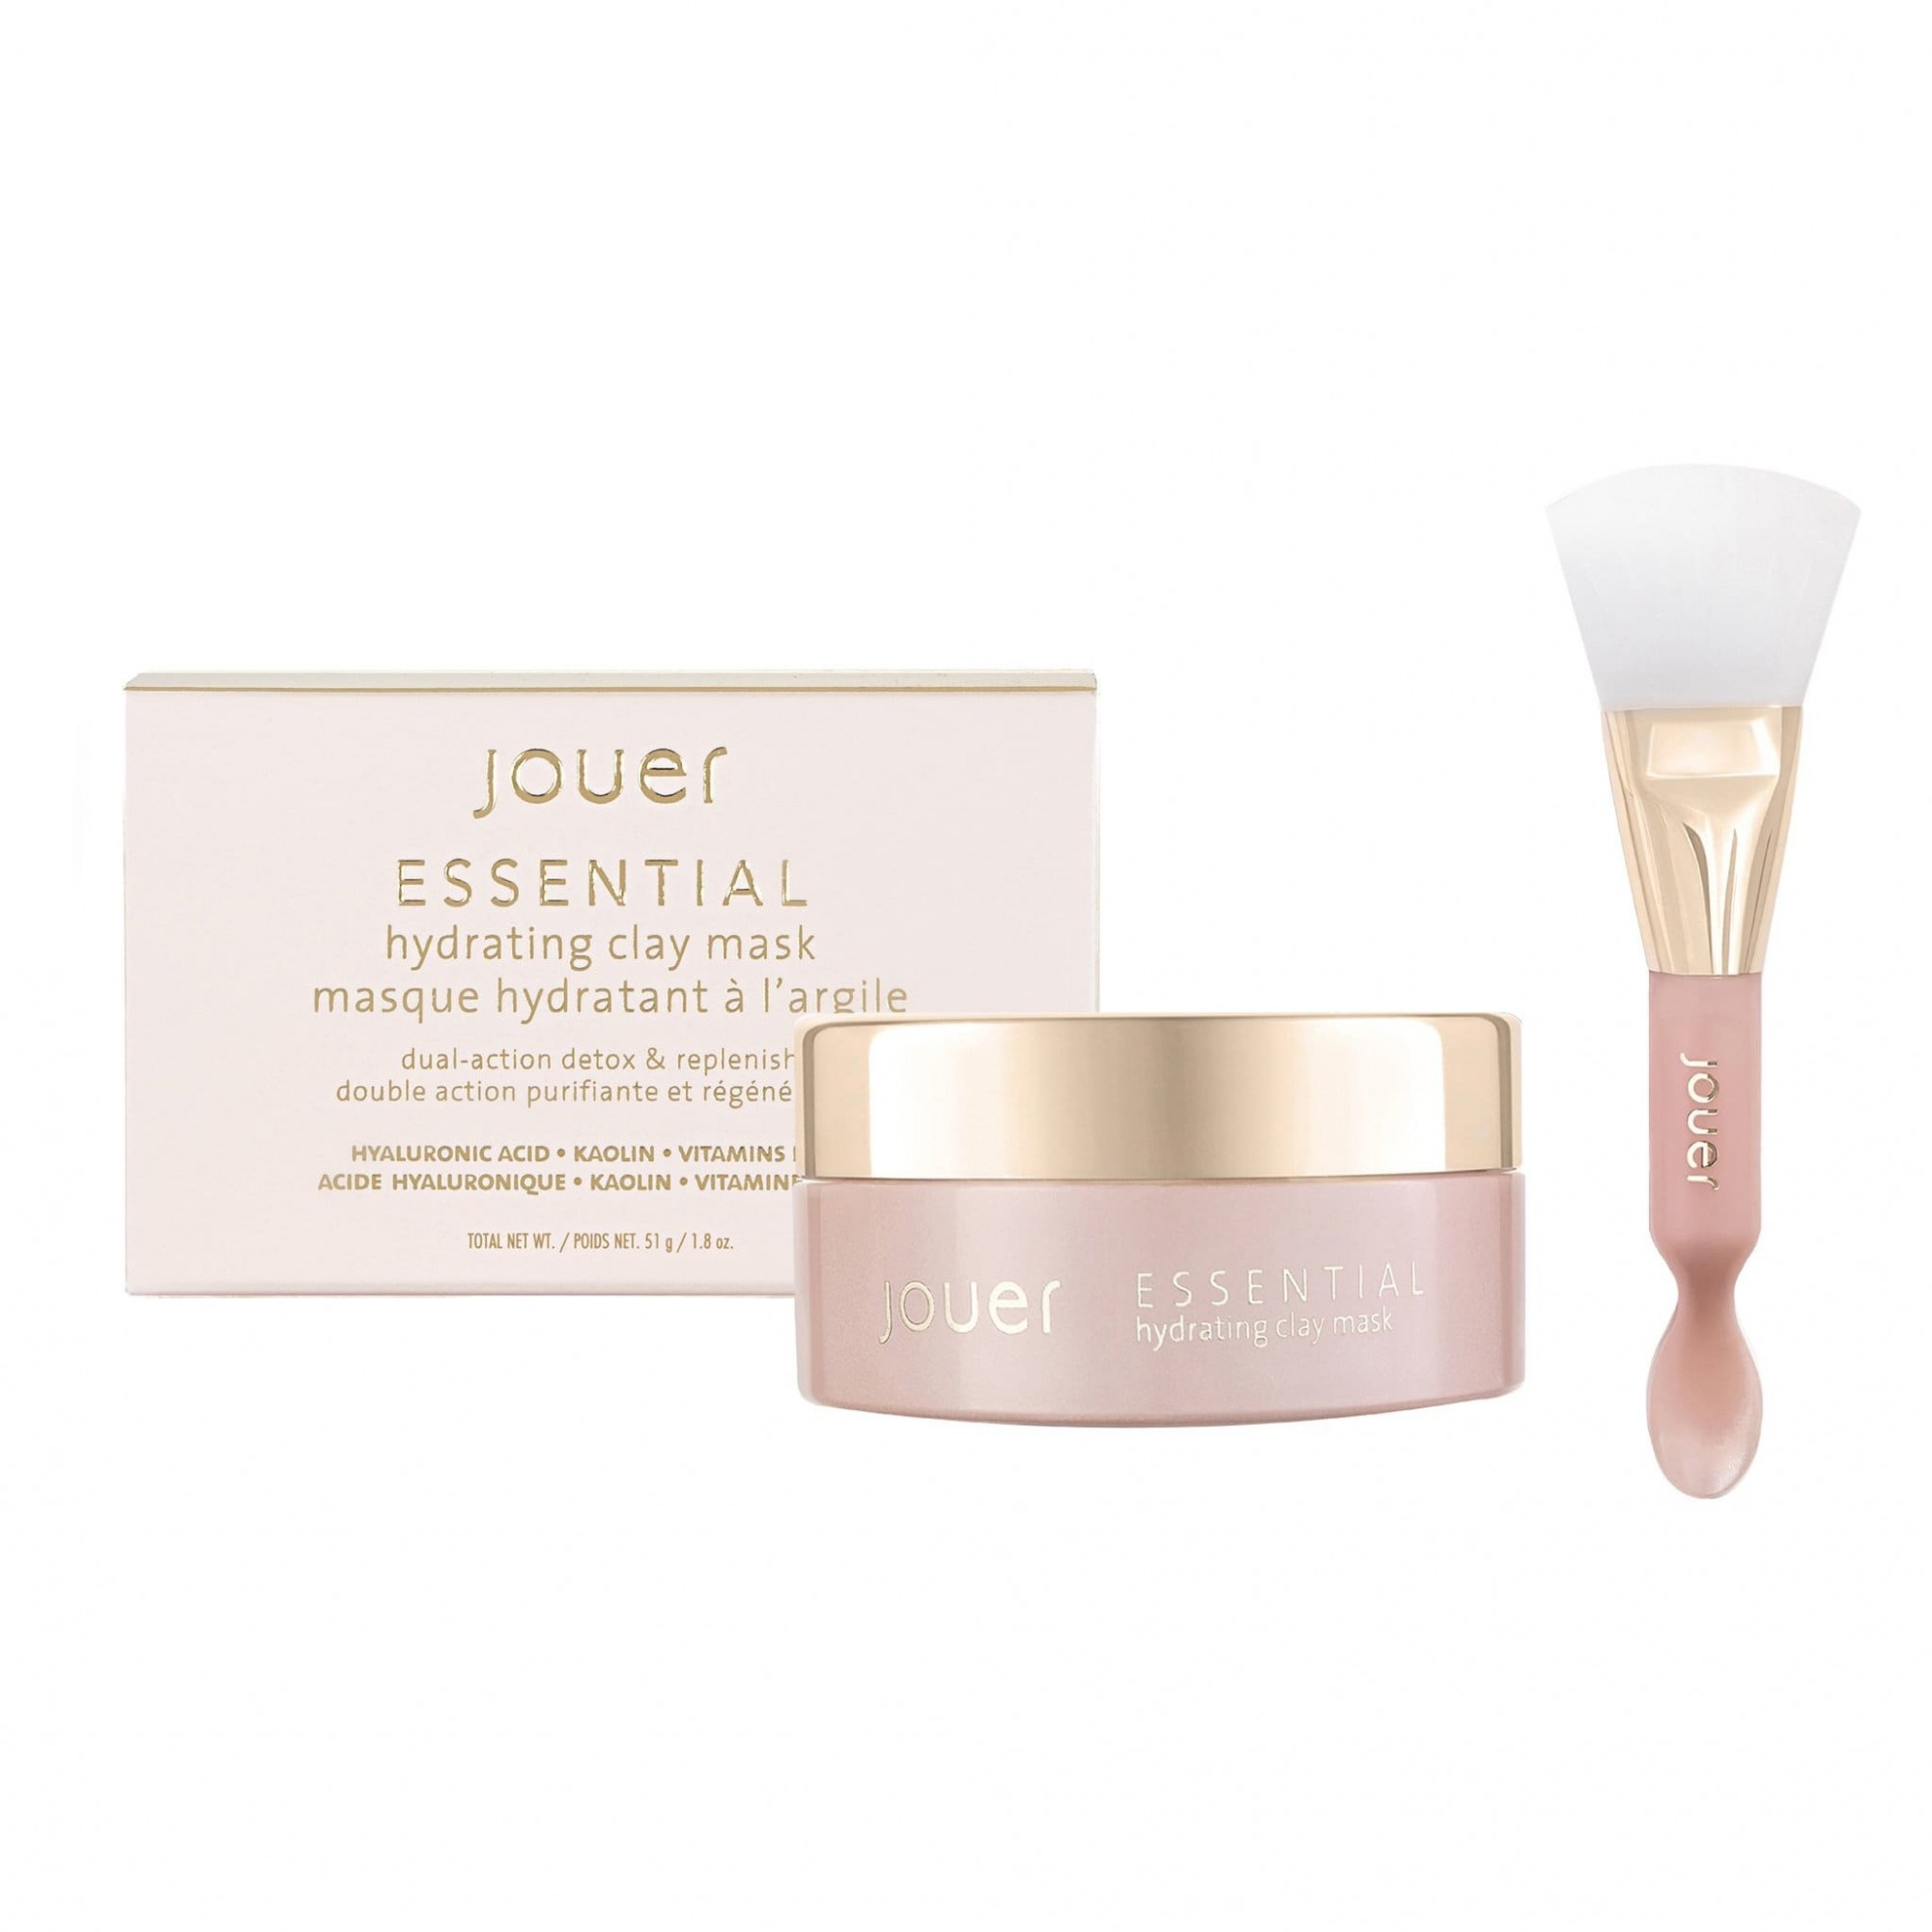 Jouer Cosmetics Essential Hydrating Clay Mask Dual-action Detox & Replenish